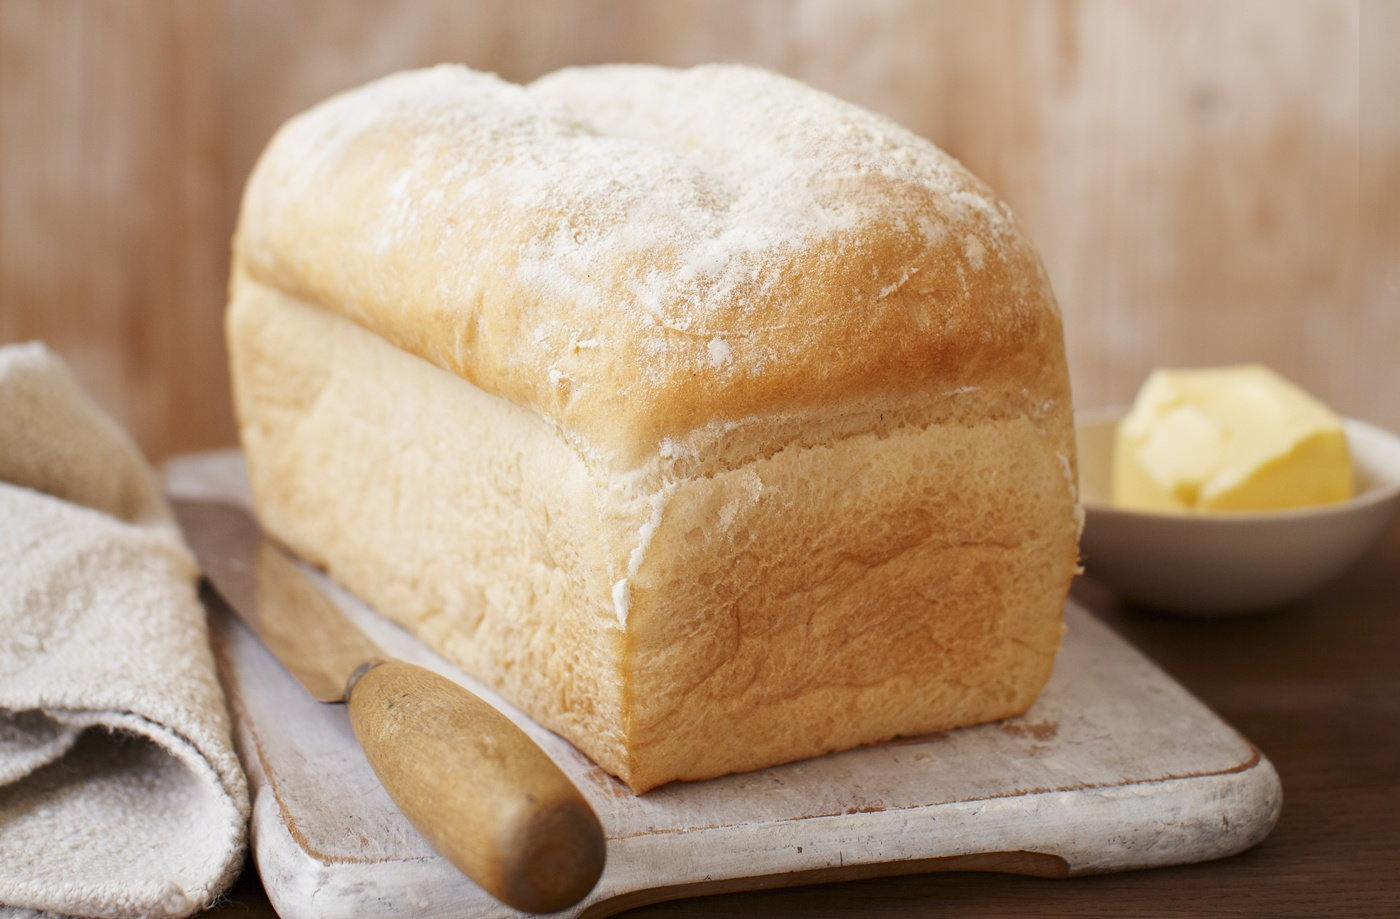 What is an easy bread recipe?